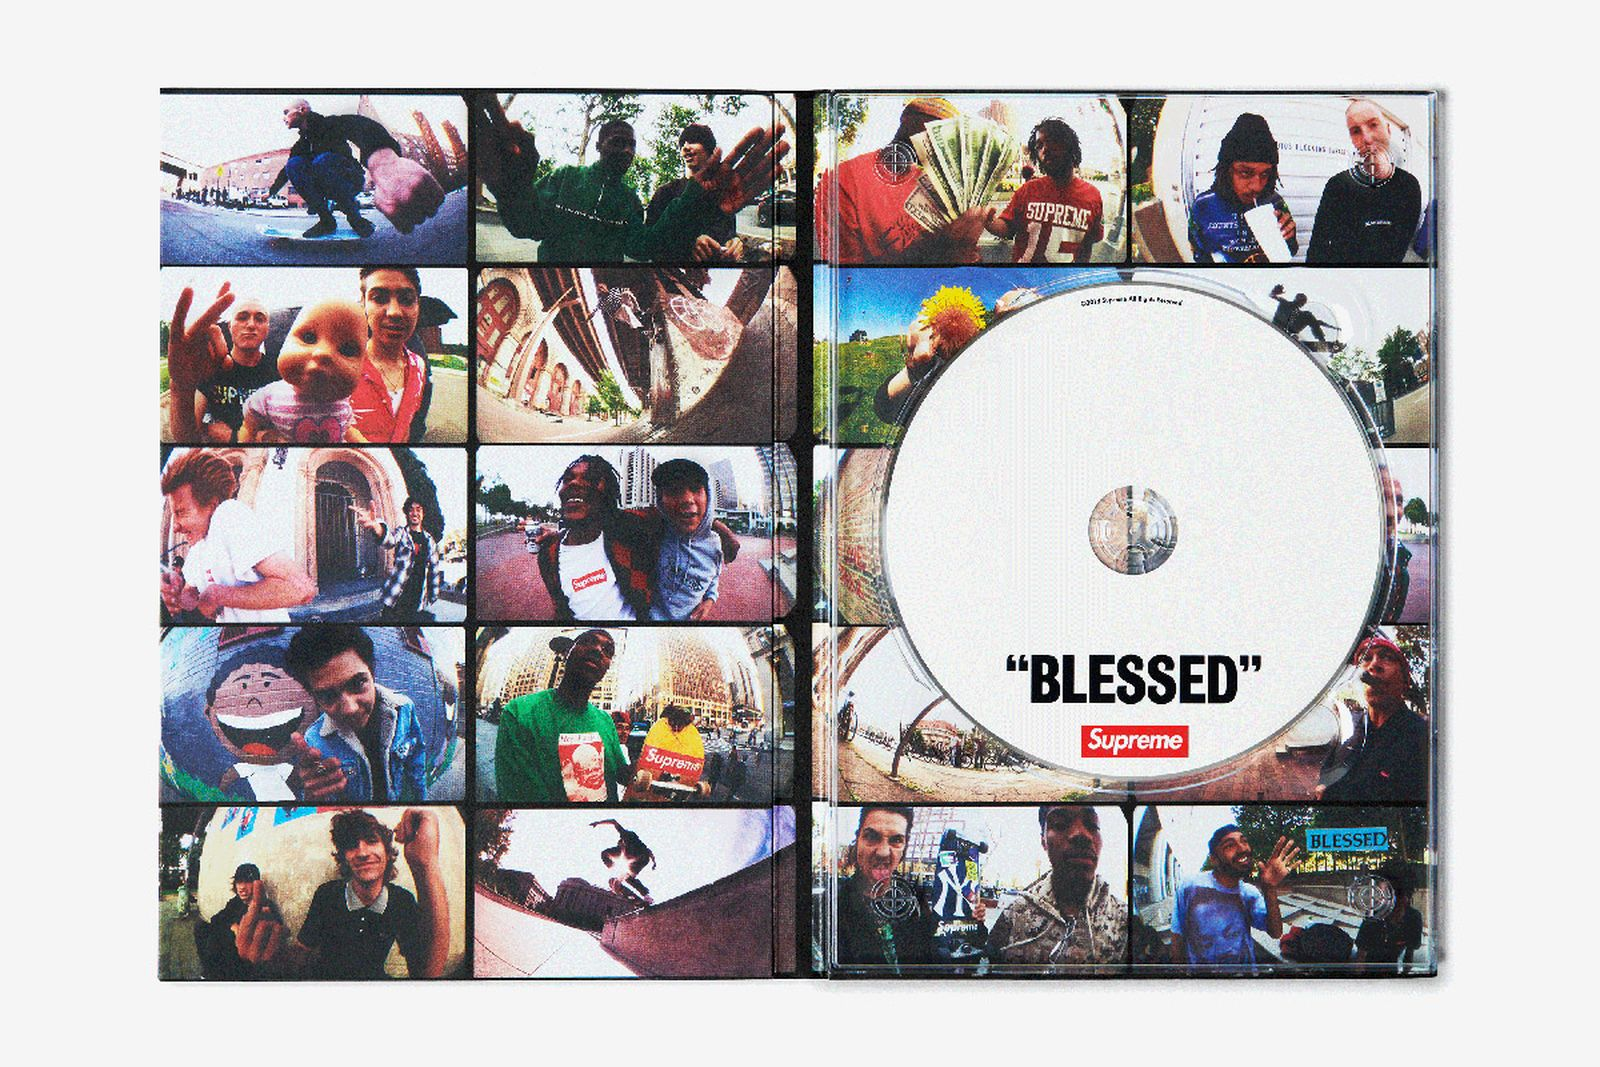 supreme blessed skate video review main